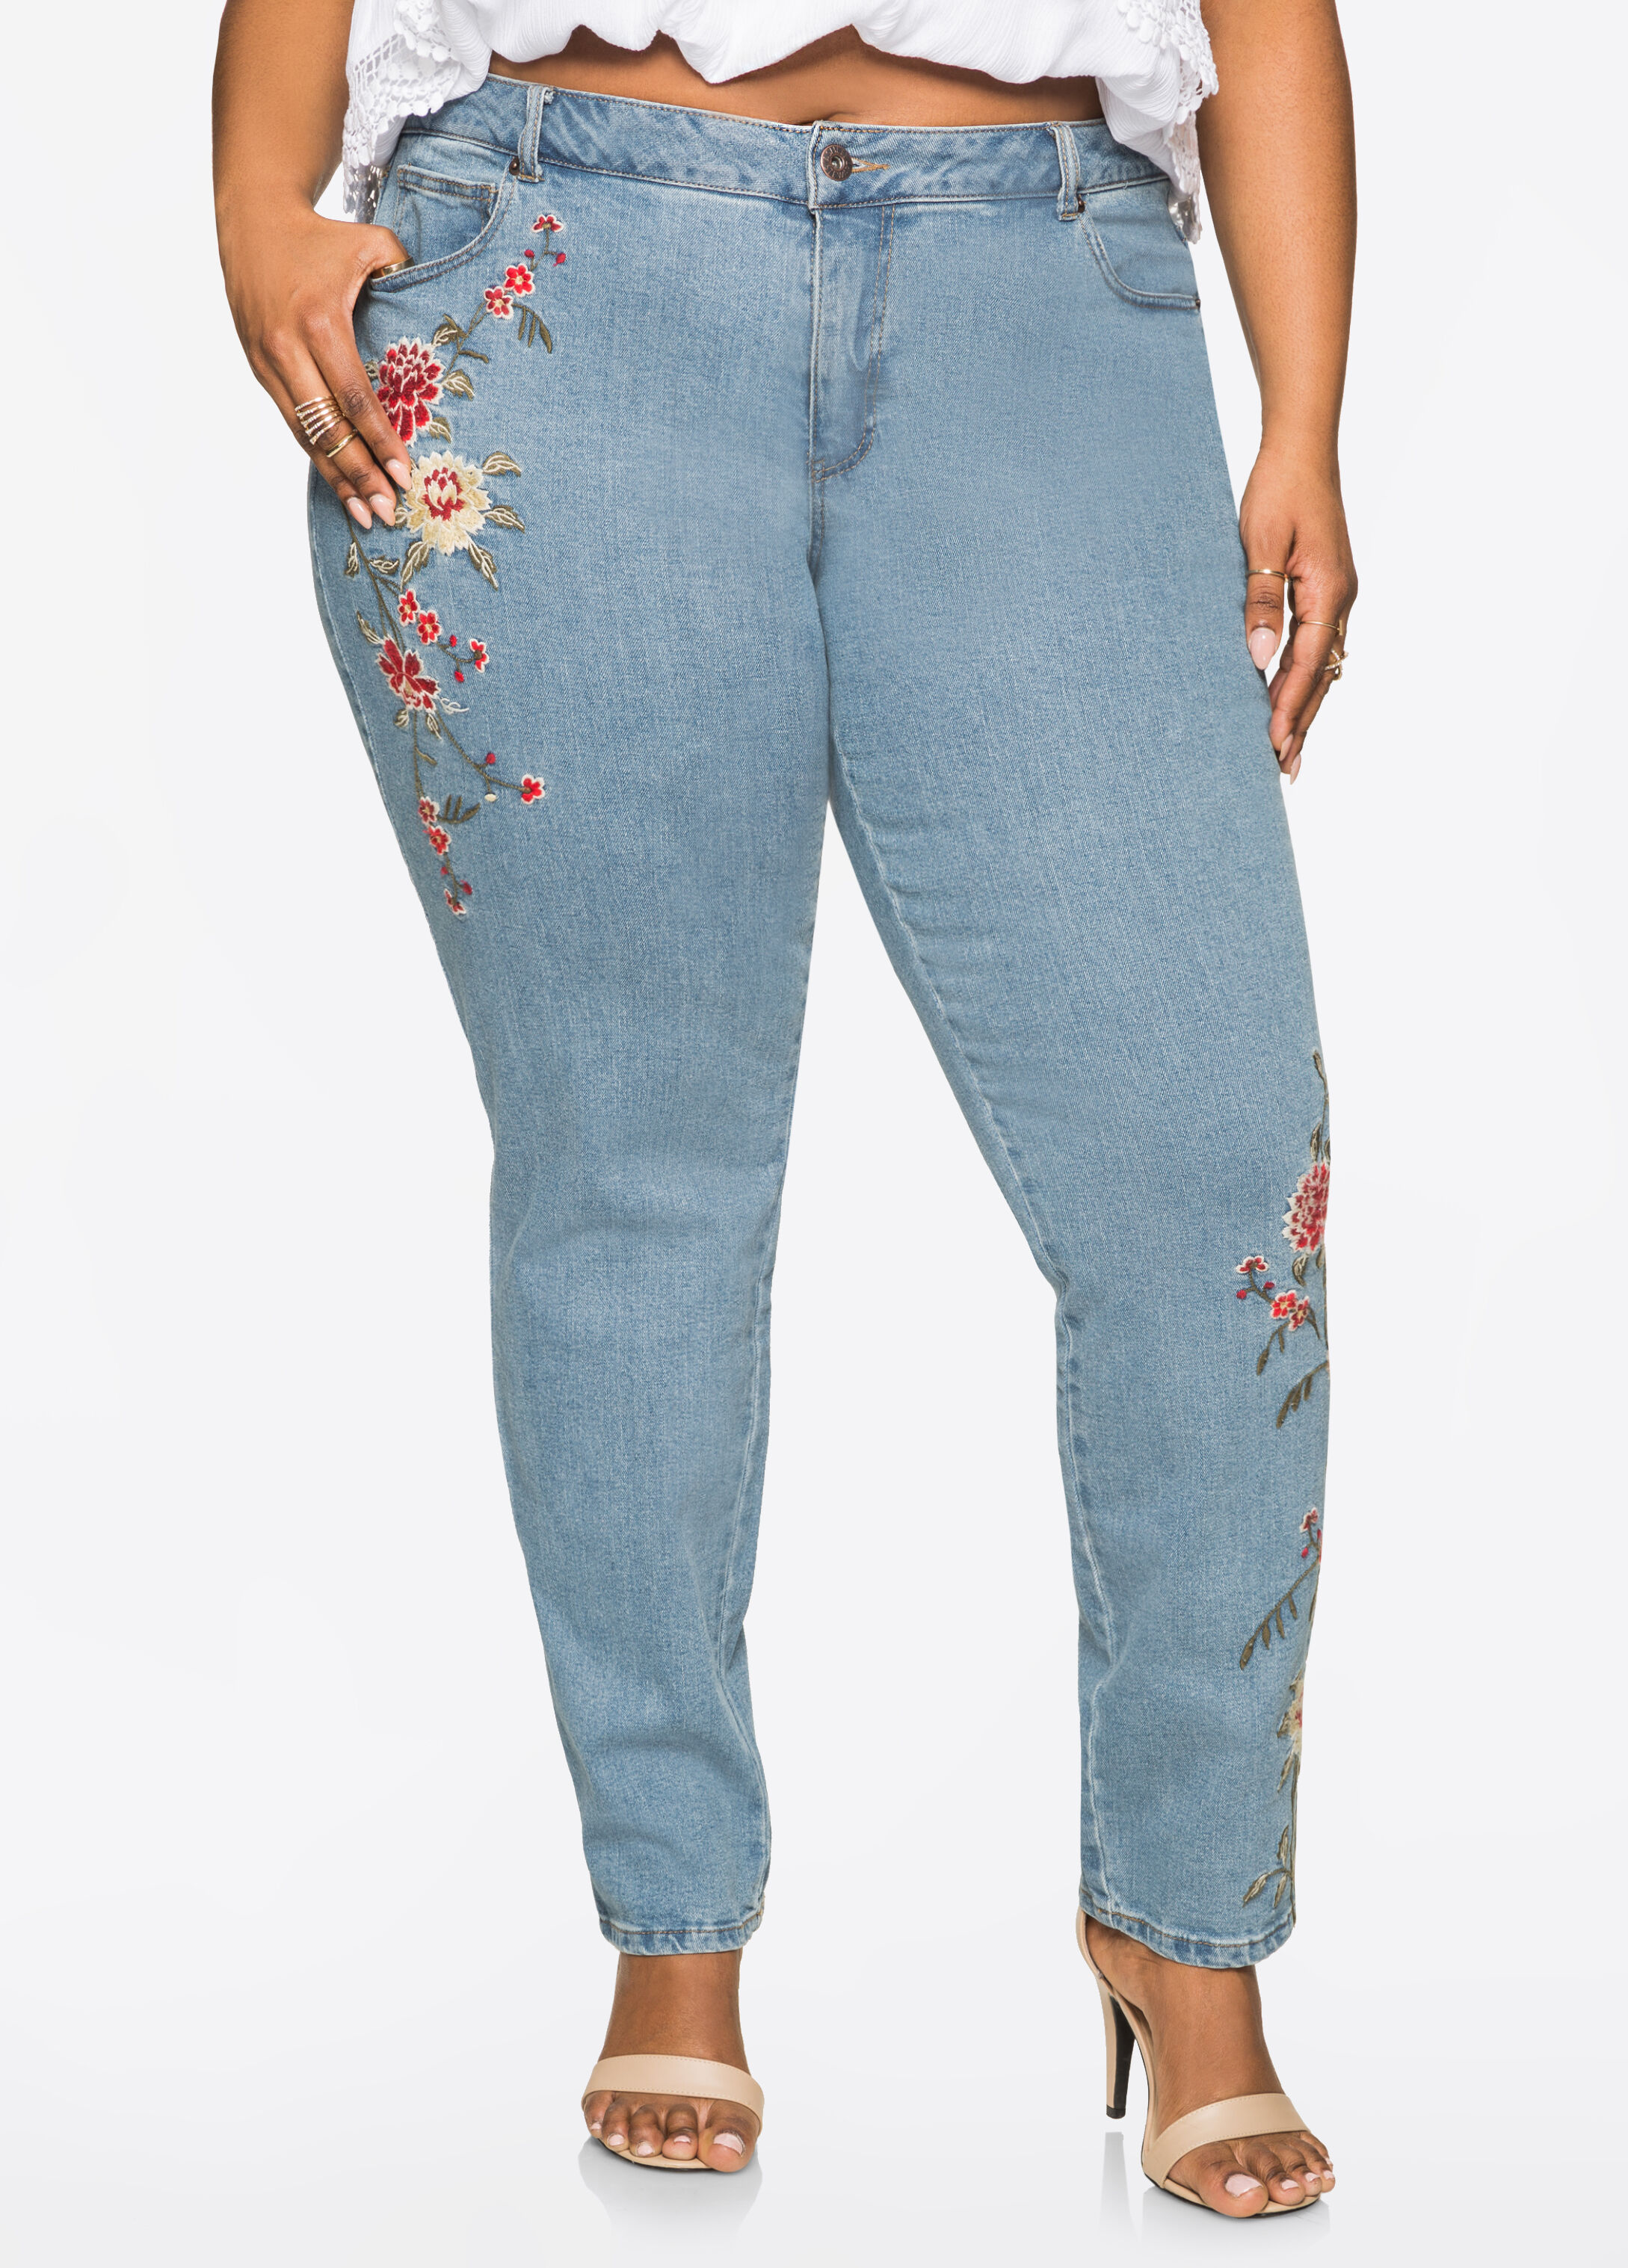 Floral Embroidered Skinny Jean Indigo - Clearance